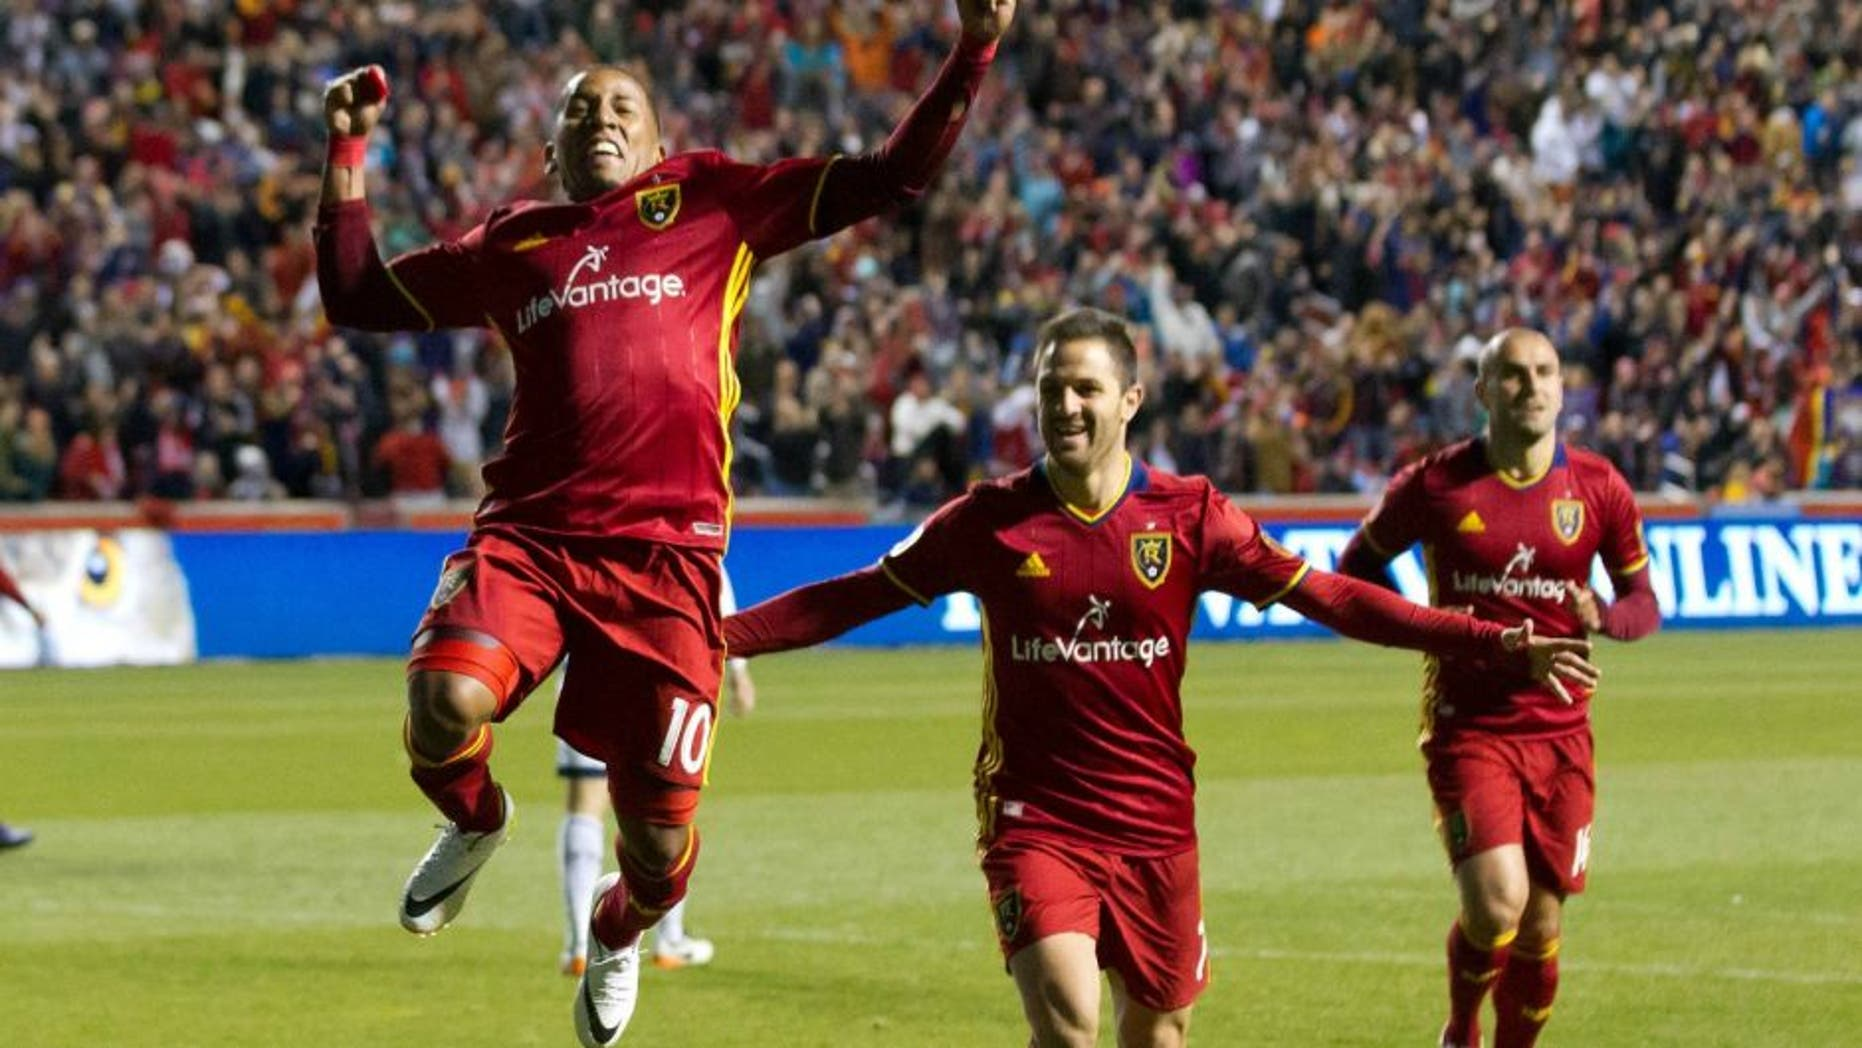 Apr 16, 2016; Sandy, UT, USA; Real Salt Lake forwards Juan Manuel Martinez (right) and Joao Plata (10) celebrate a goal during the second half against the Vancouver Whitecaps at Rio Tinto Stadium. Real Salt Lake won 1-0. Mandatory Credit: Russ Isabella-USA TODAY Sports